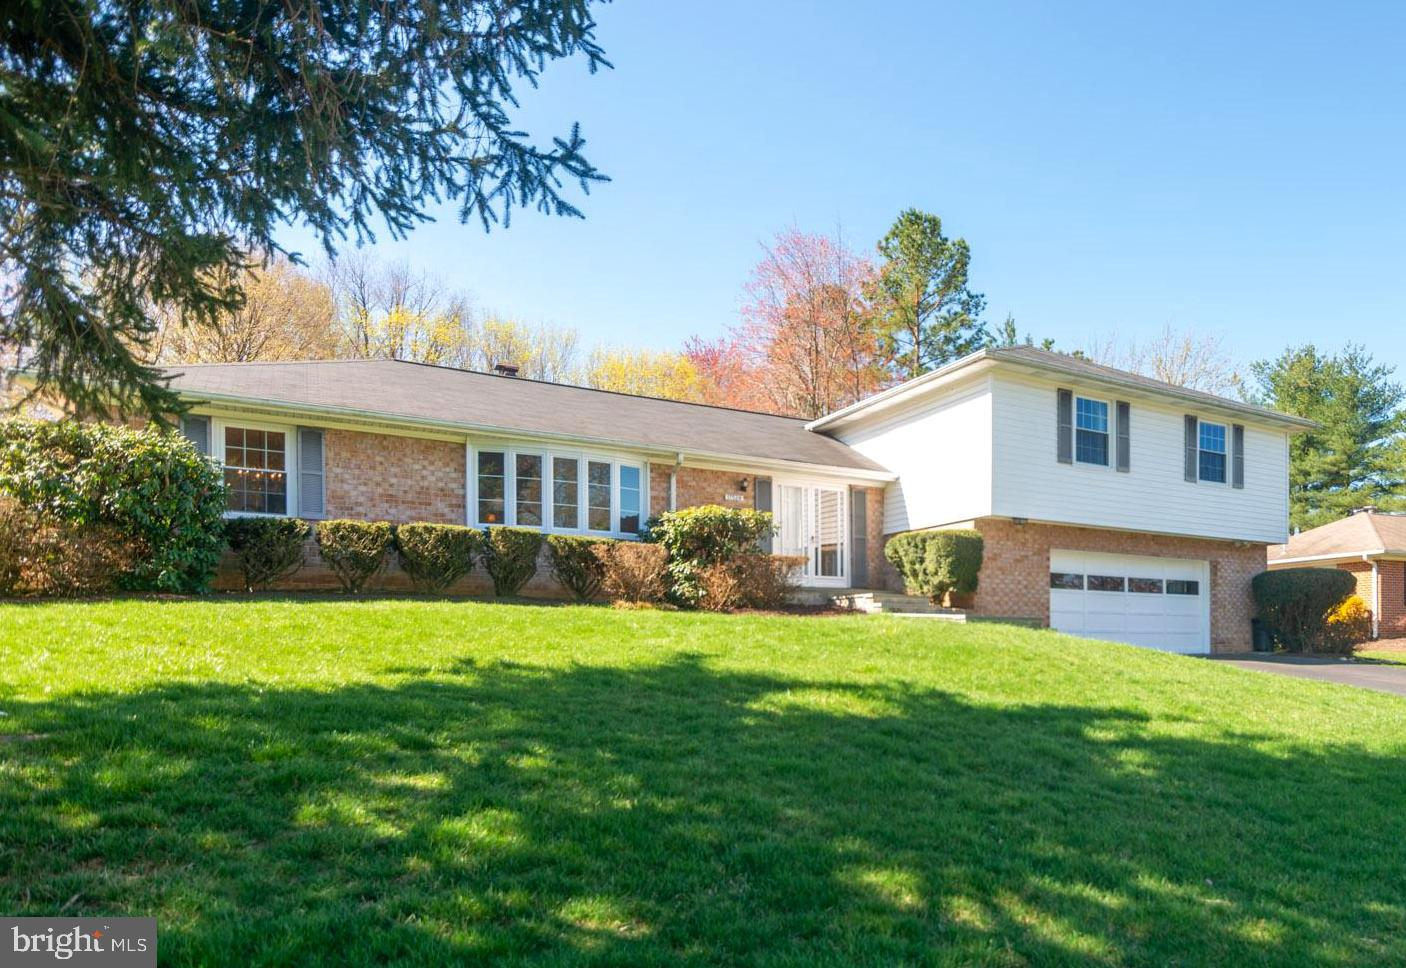 17528 QUEEN ELIZABETH DRIVE, OLNEY, MD 20832